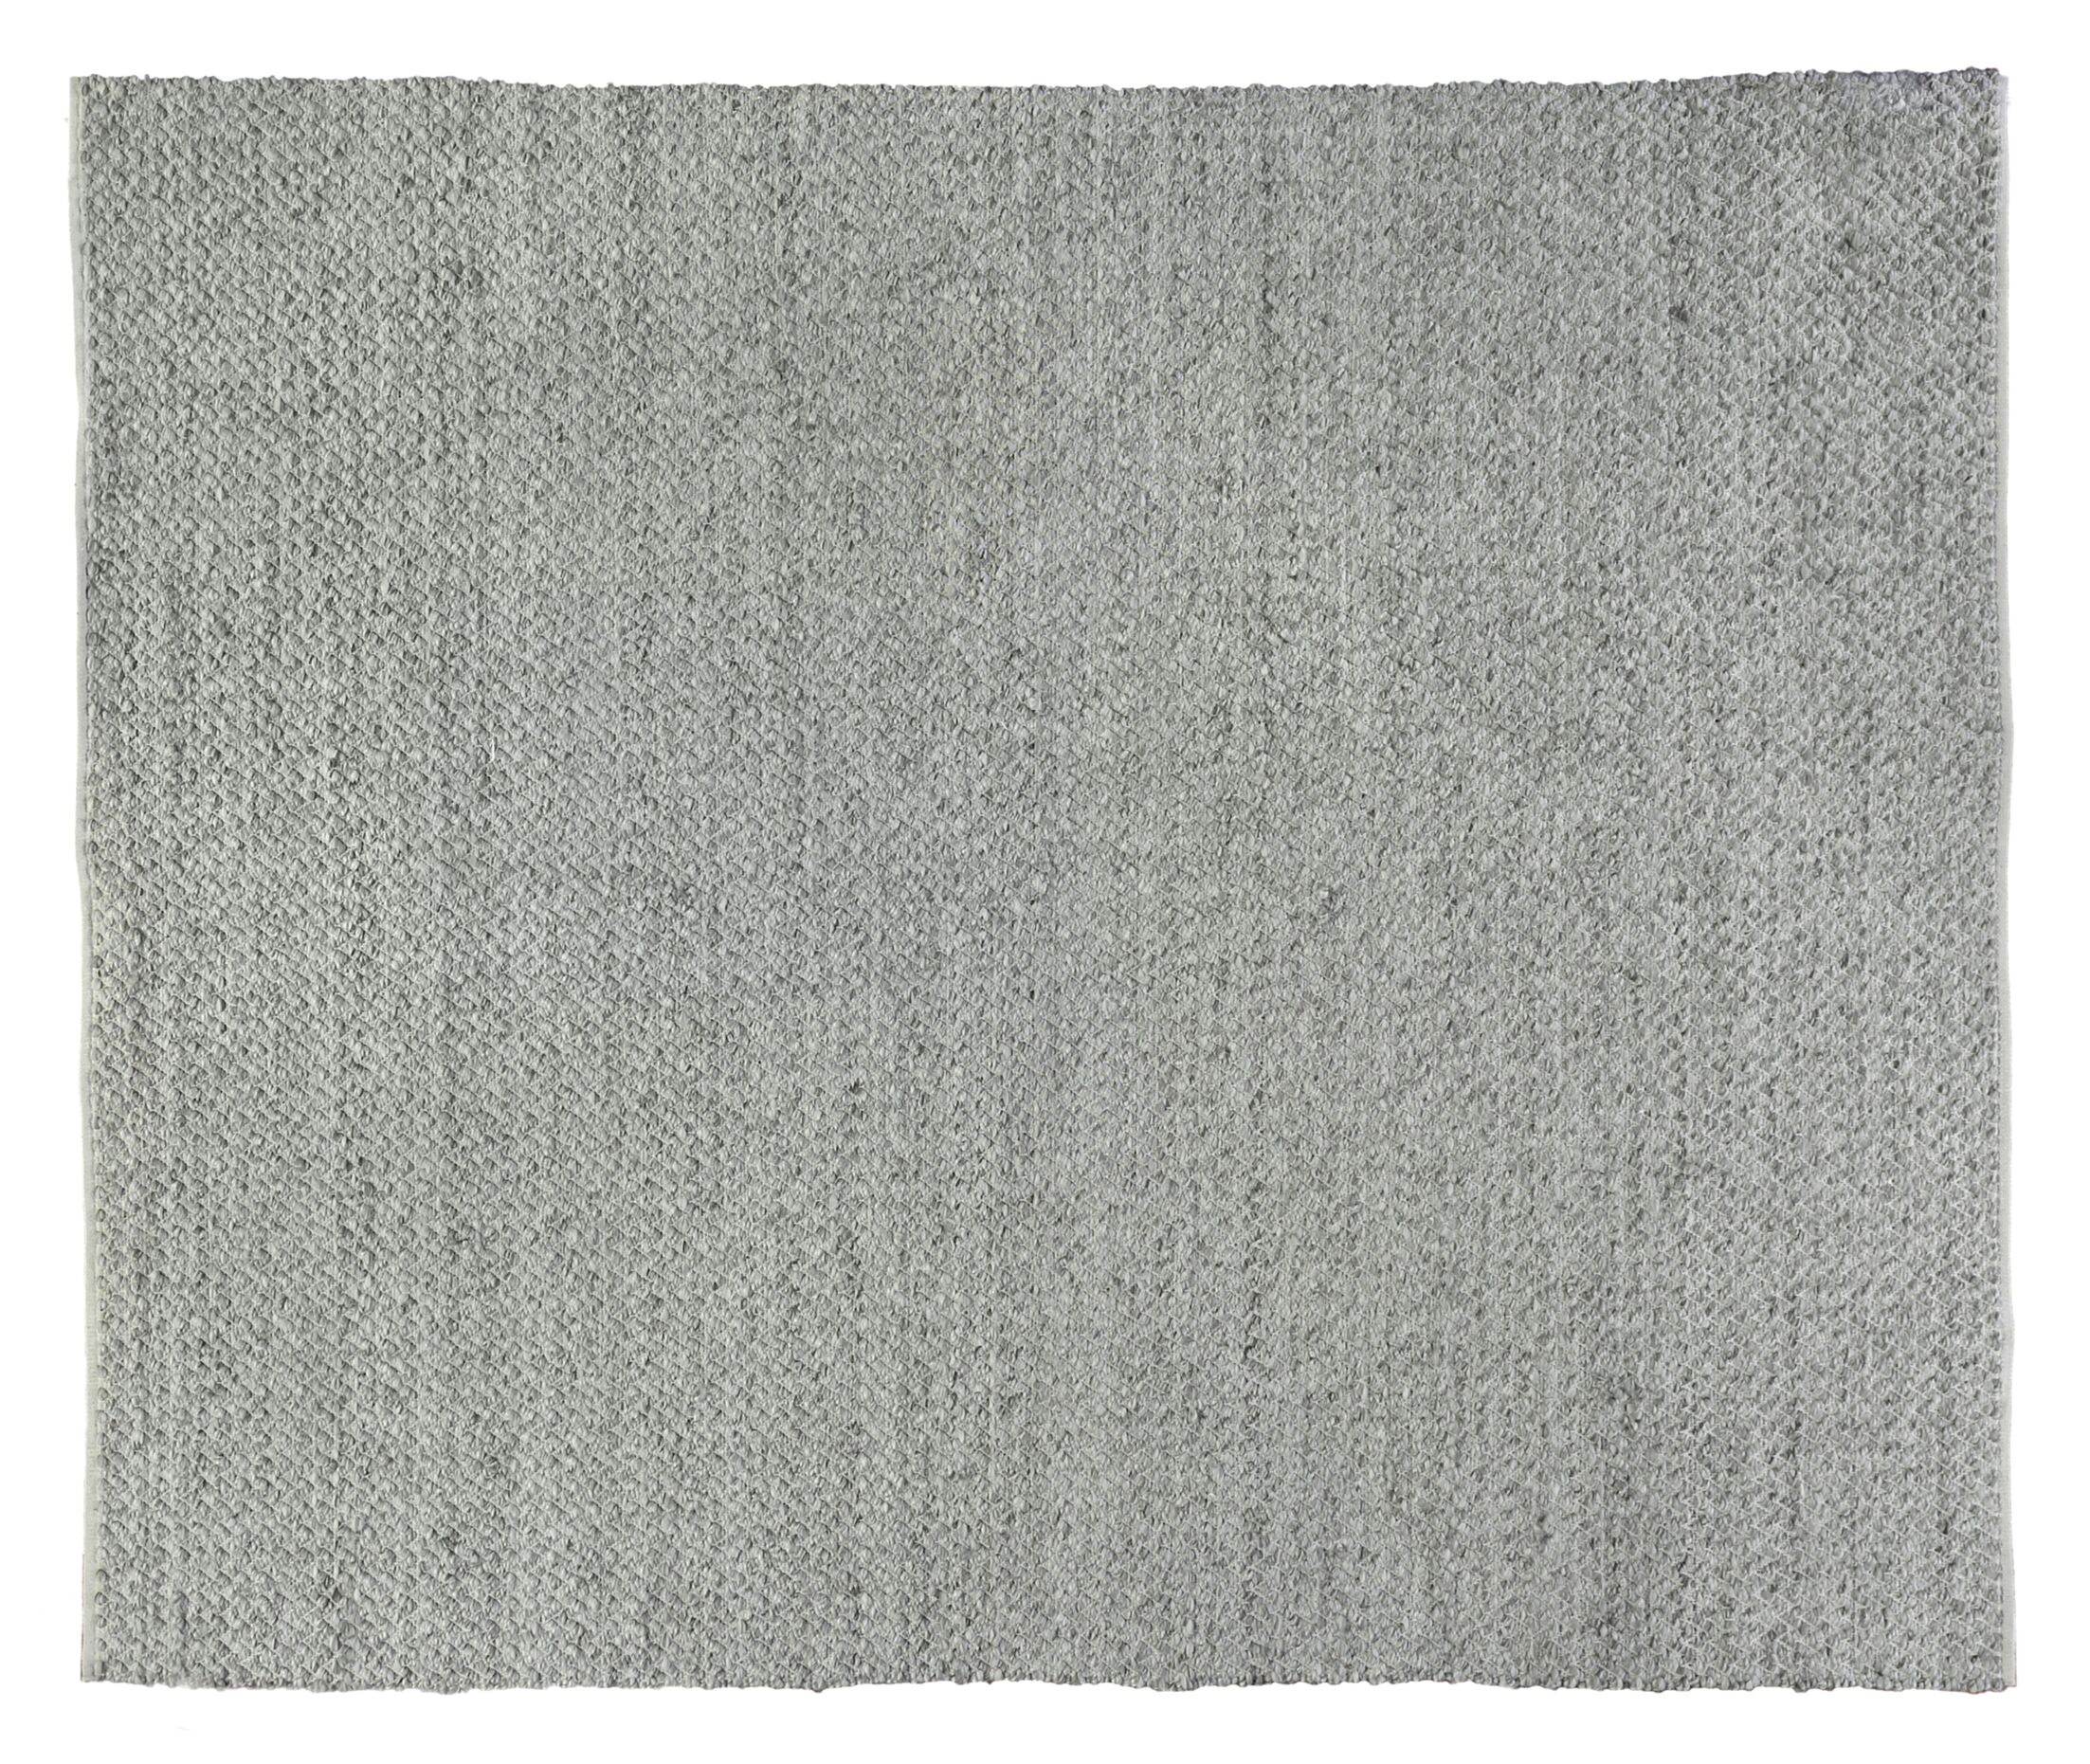 Rialto Hand-Woven Gray Area Rug Rug Size: Rectangle 12' x 15'